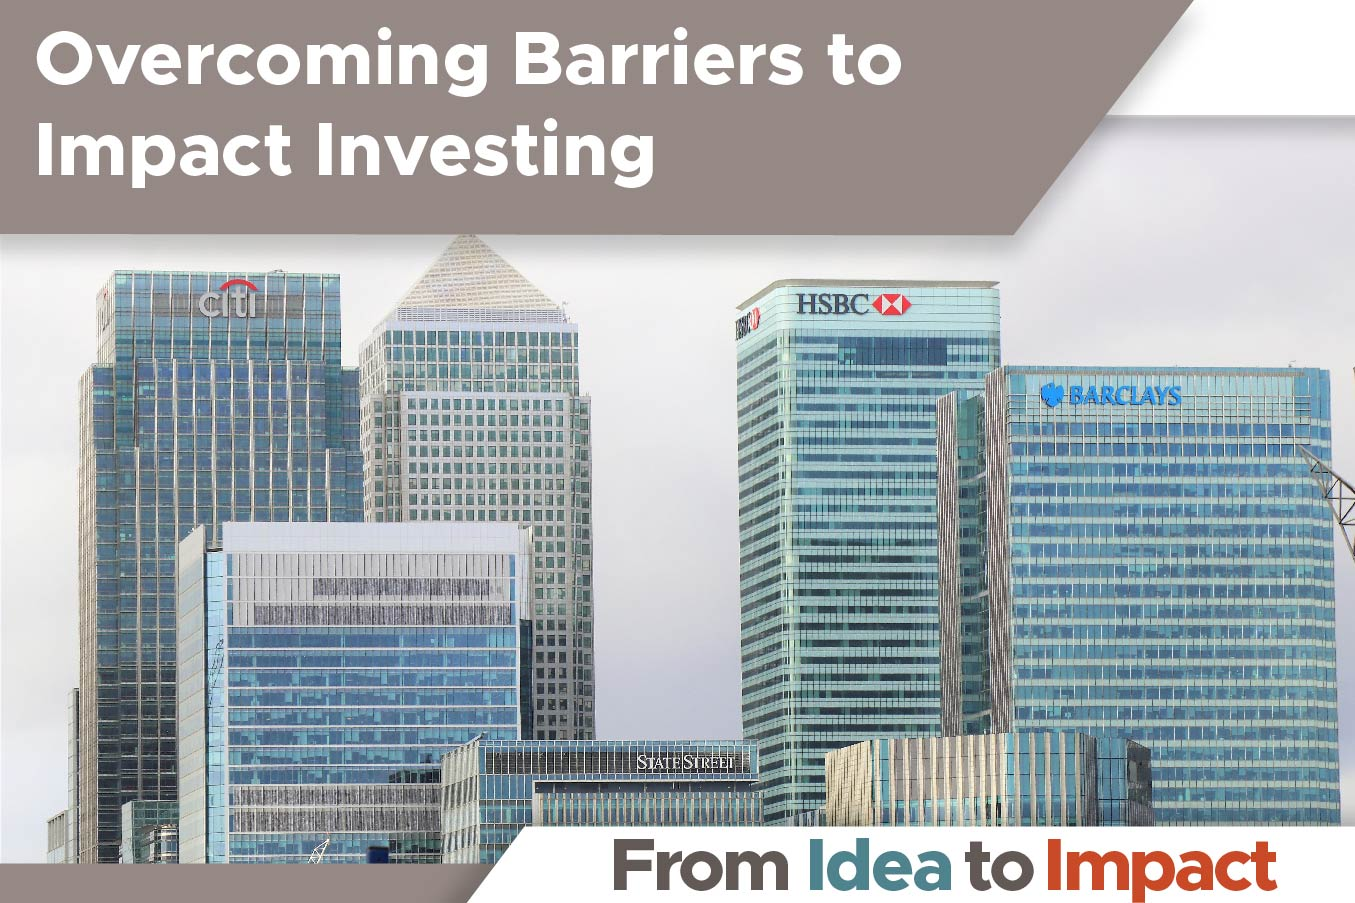 Overcoming Barriers to Impact Investing